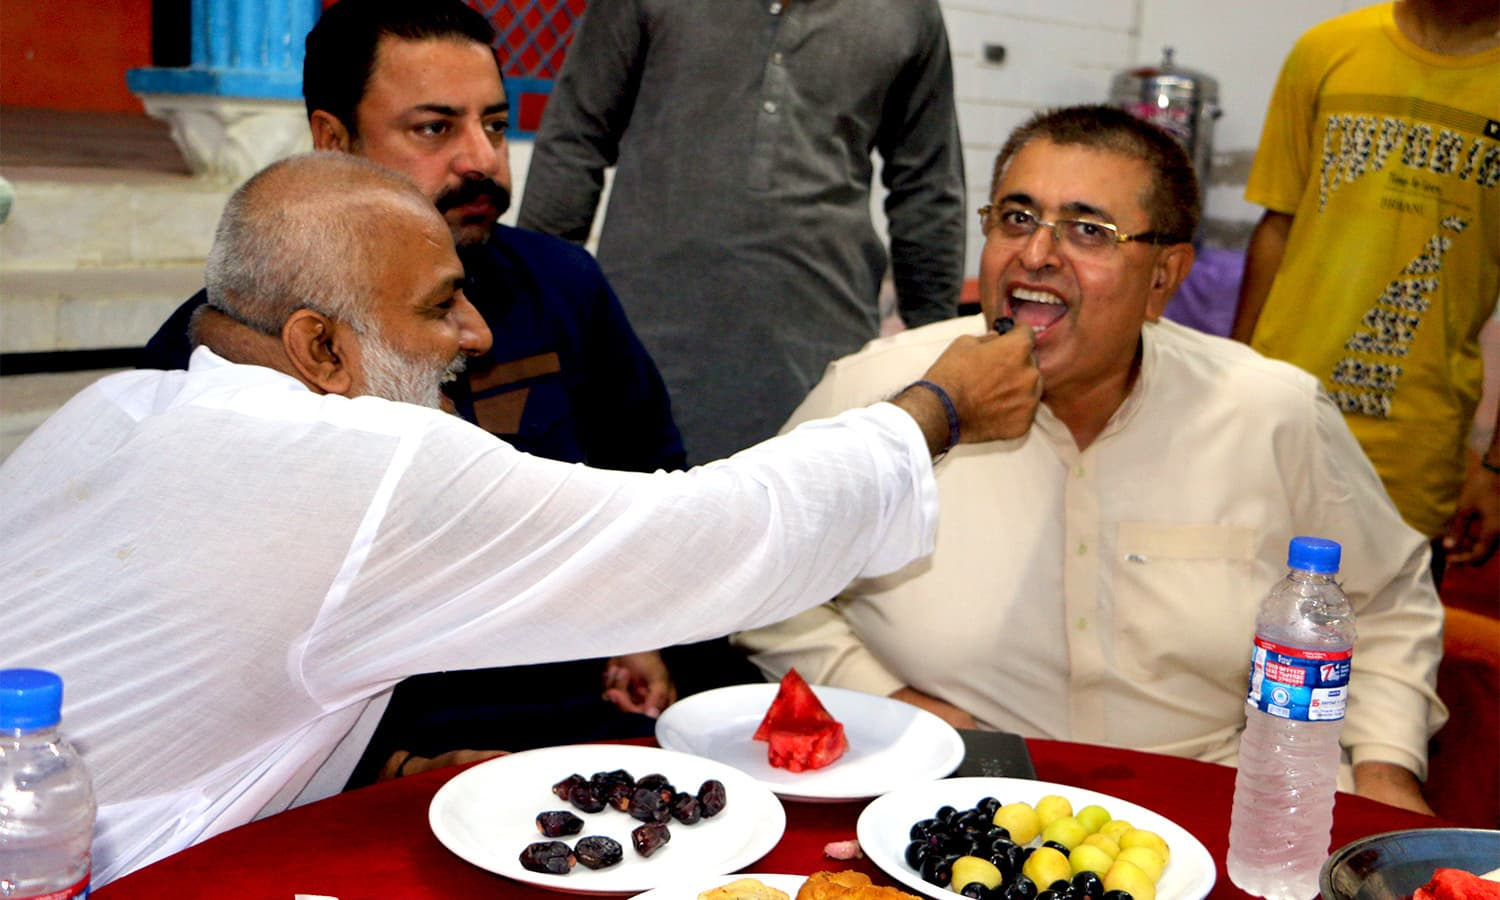 Hindu religious leader Raju Baba feeding his Muslim compatriot after hearing the Azan.